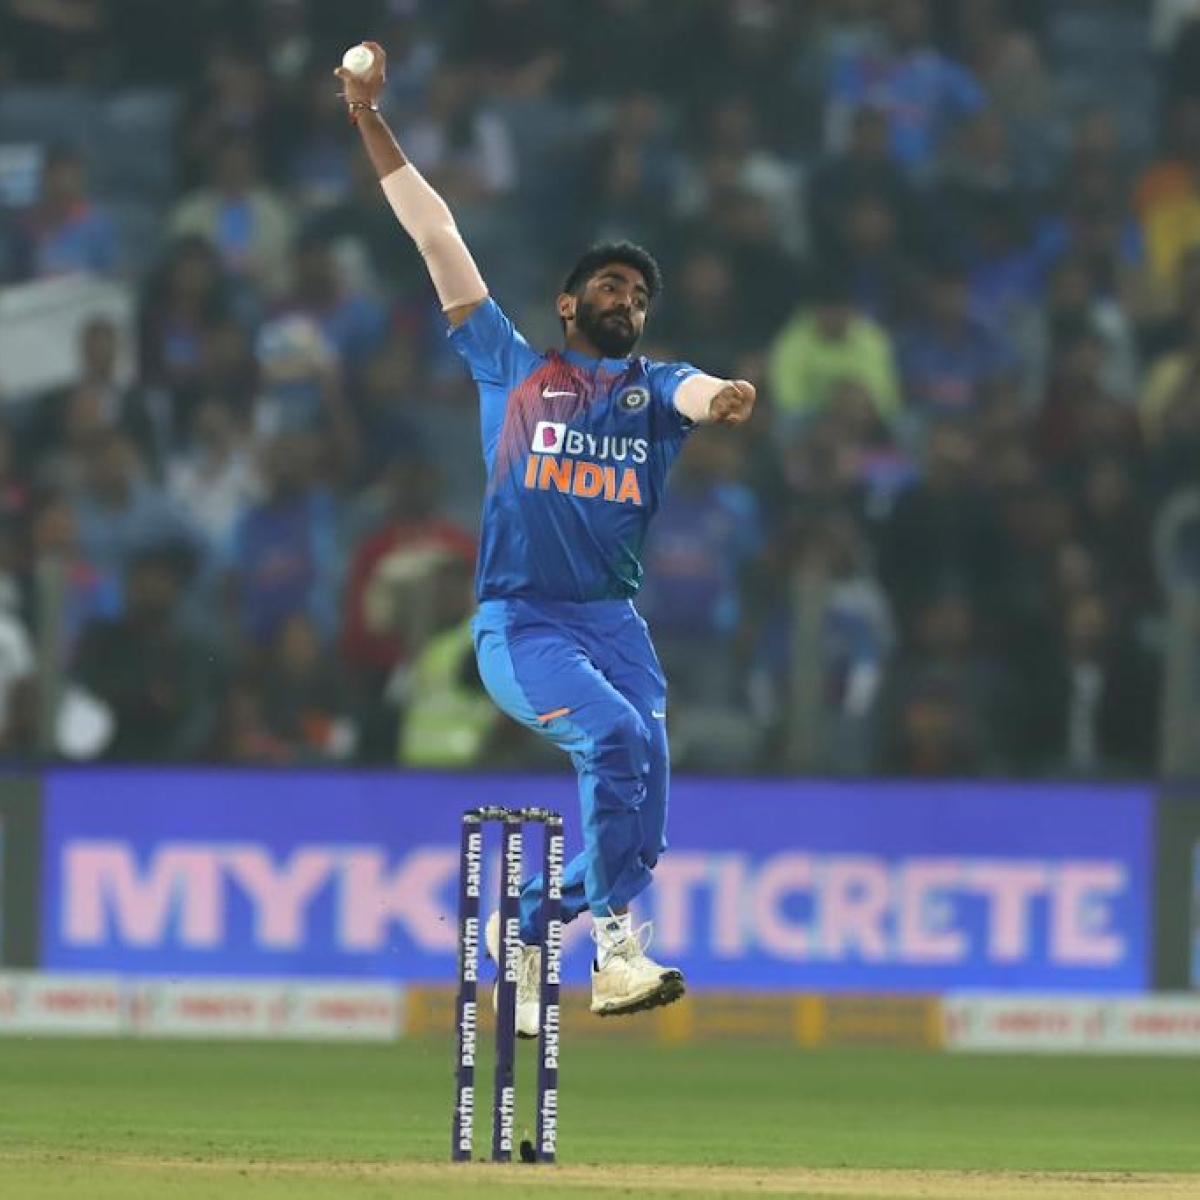 Has Jasprit Bumrah's injury robbed India of its most talented pacer?